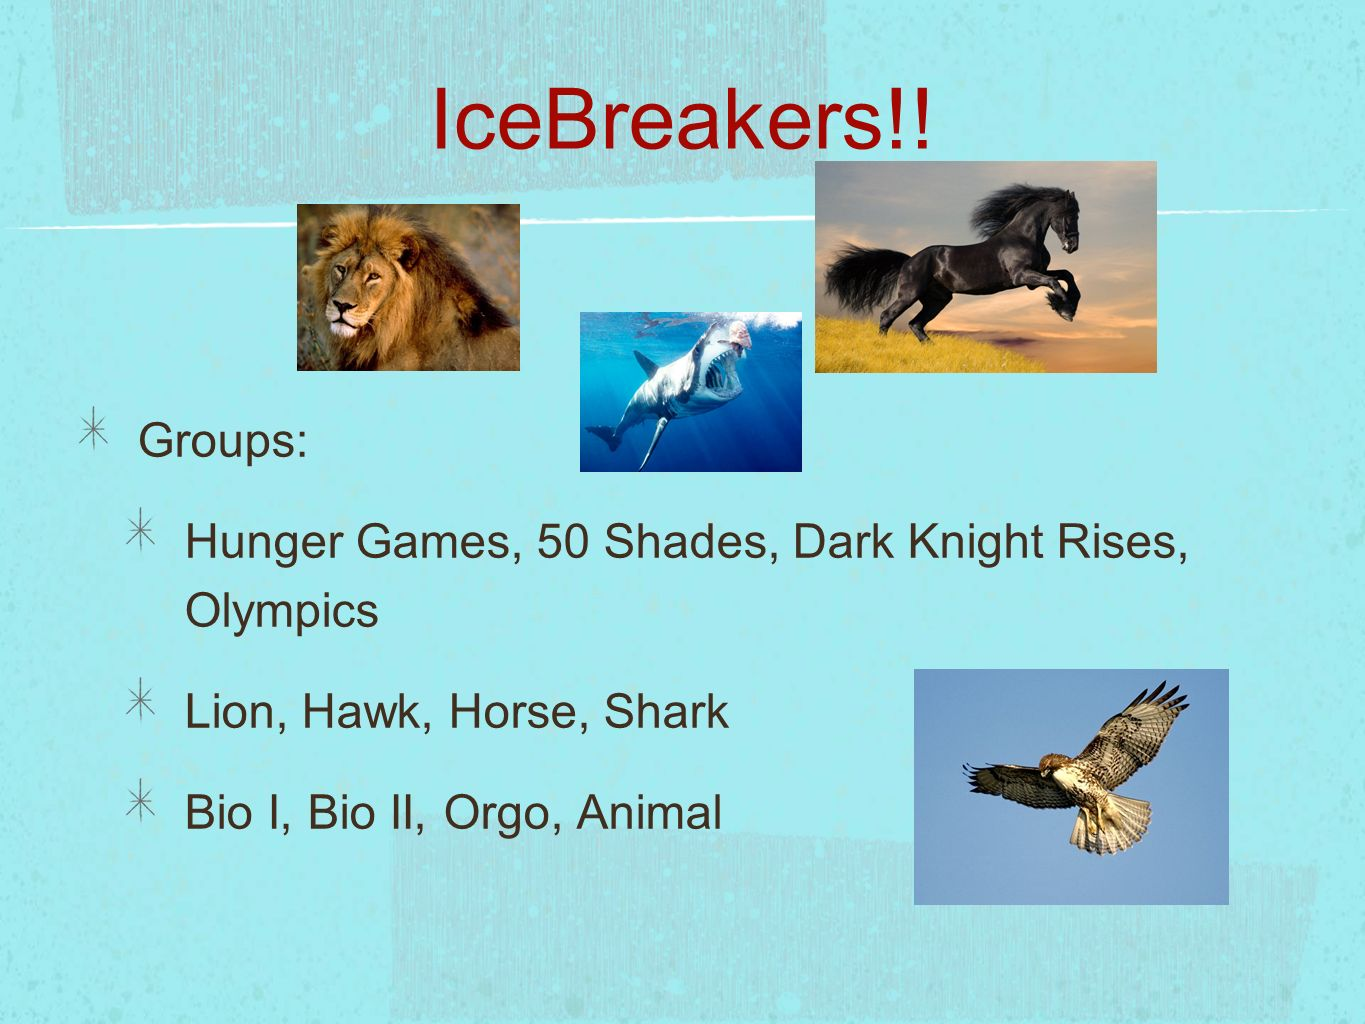 IceBreakers!! Groups: Hunger Games, 50 Shades, Dark Knight Rises, Olympics. Lion, Hawk, Horse, Shark.